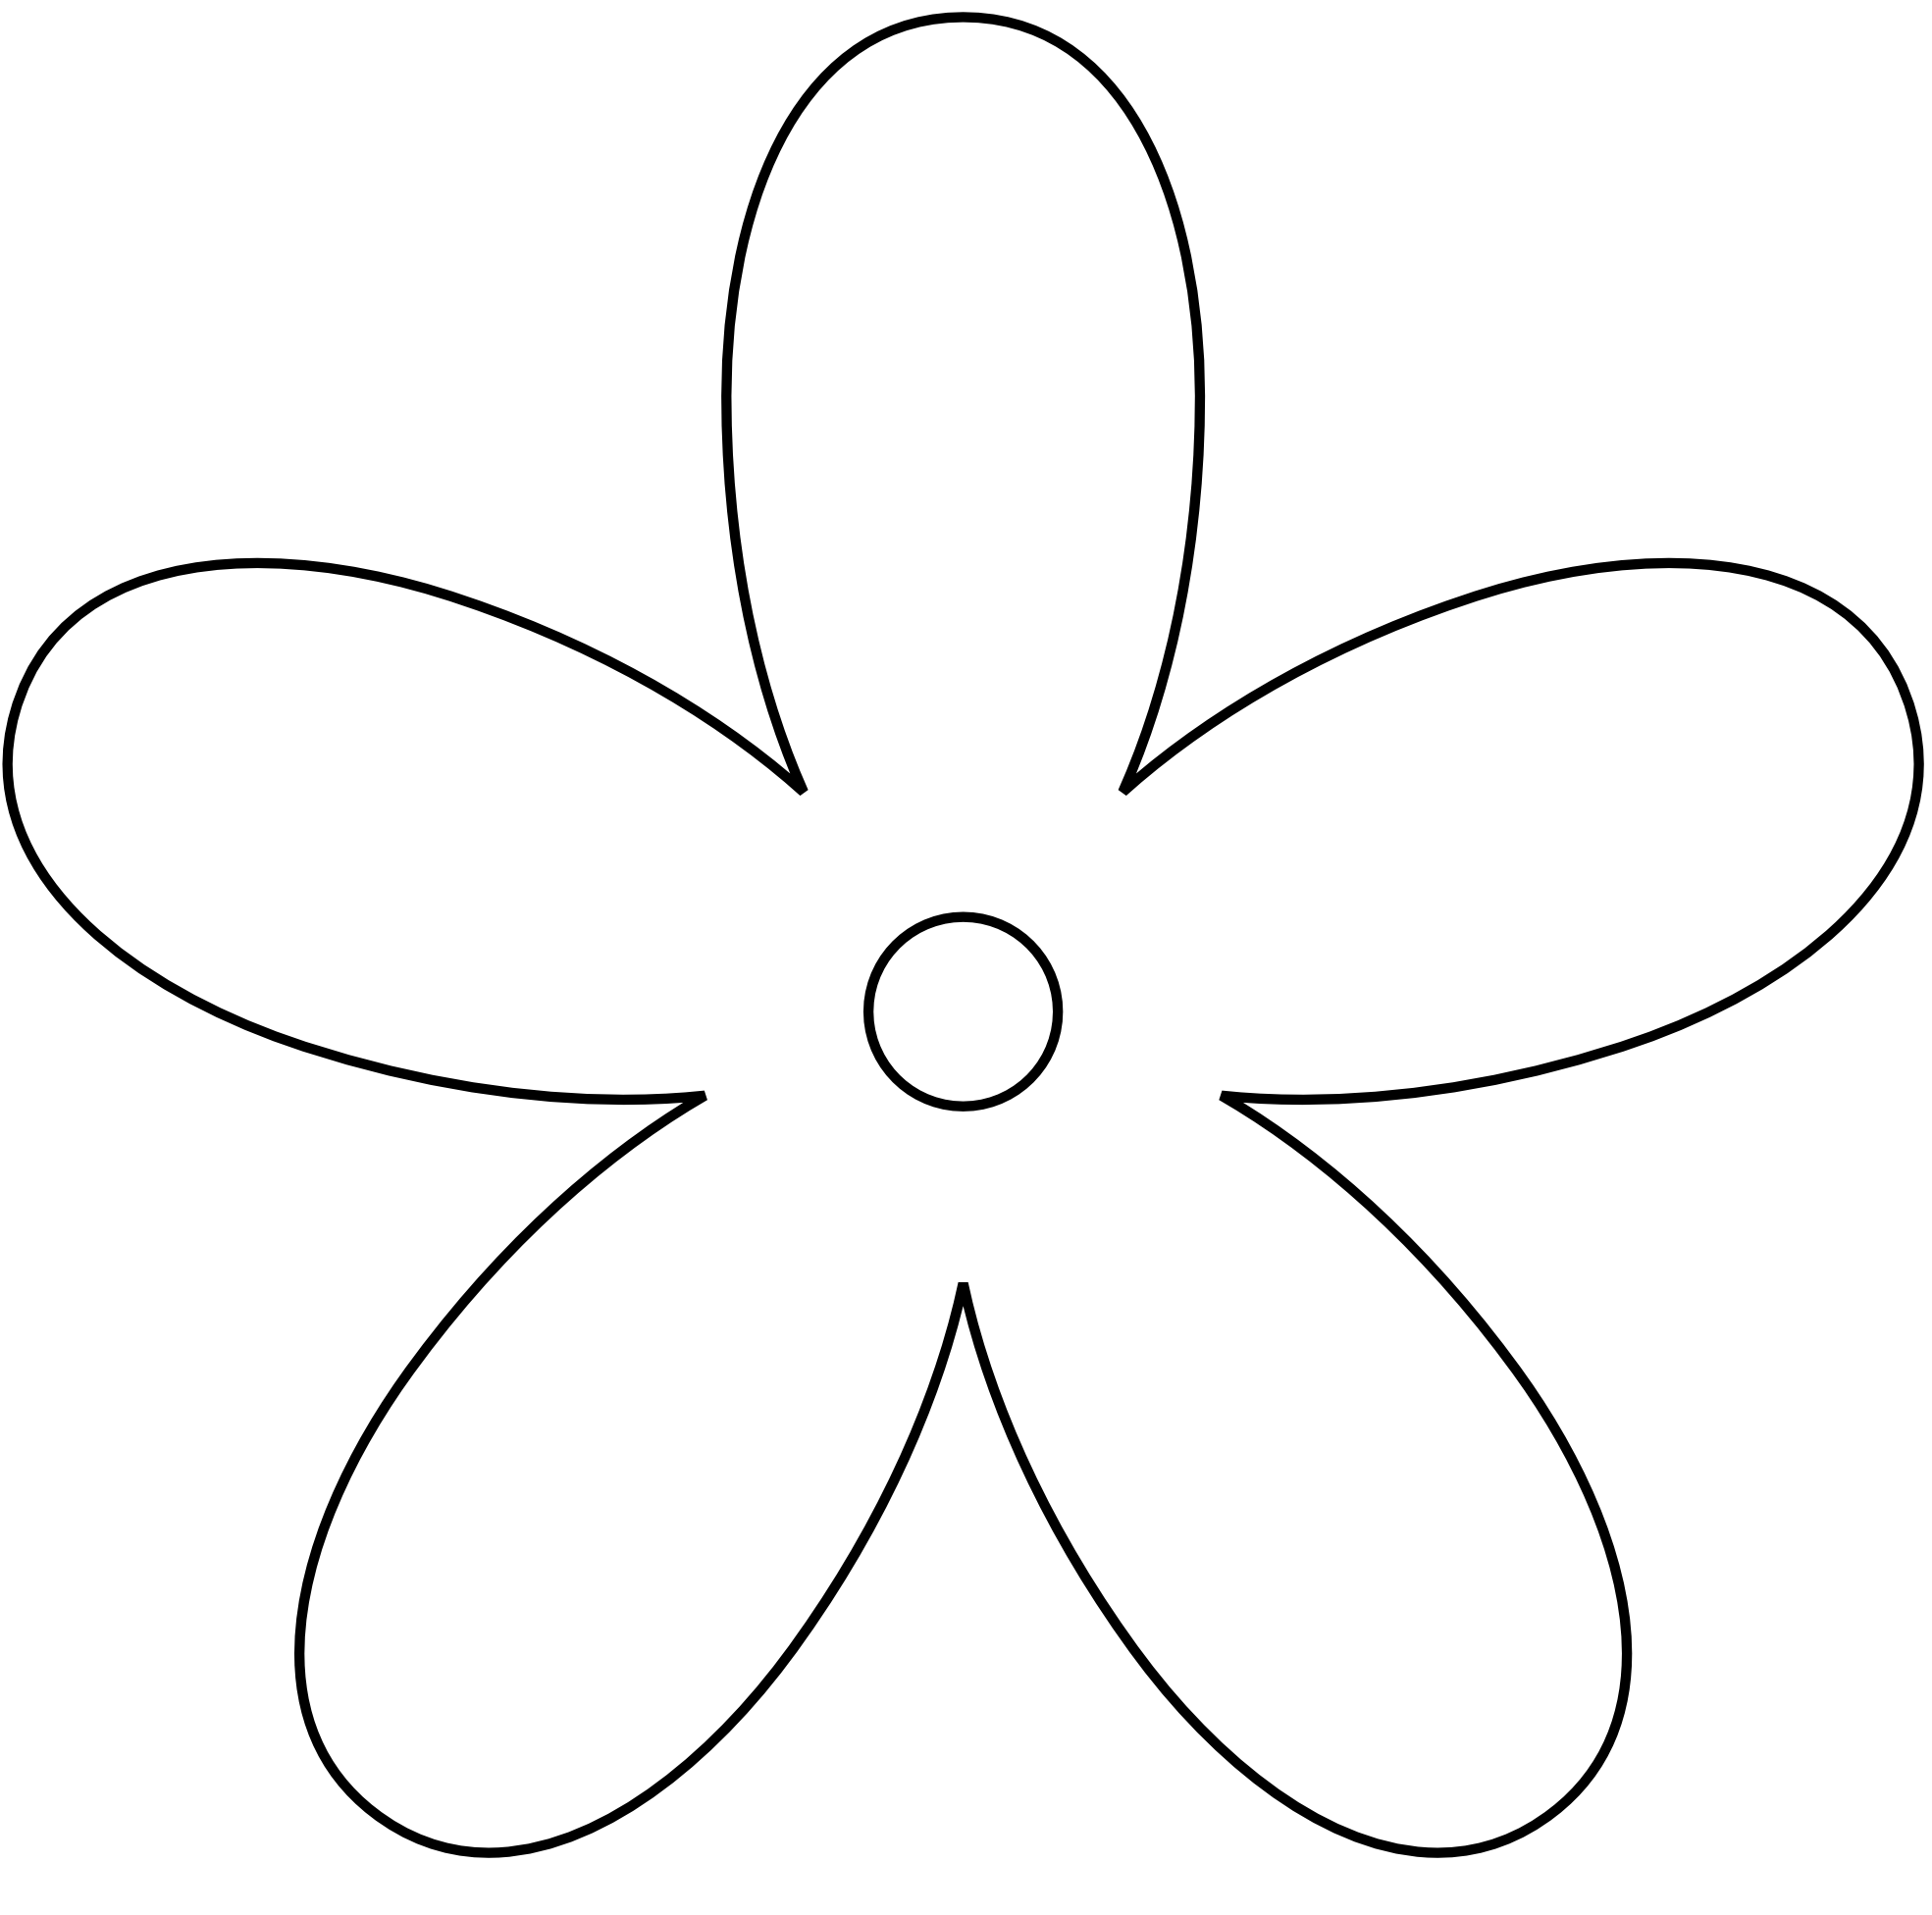 White Flower clipart #2, Download drawings